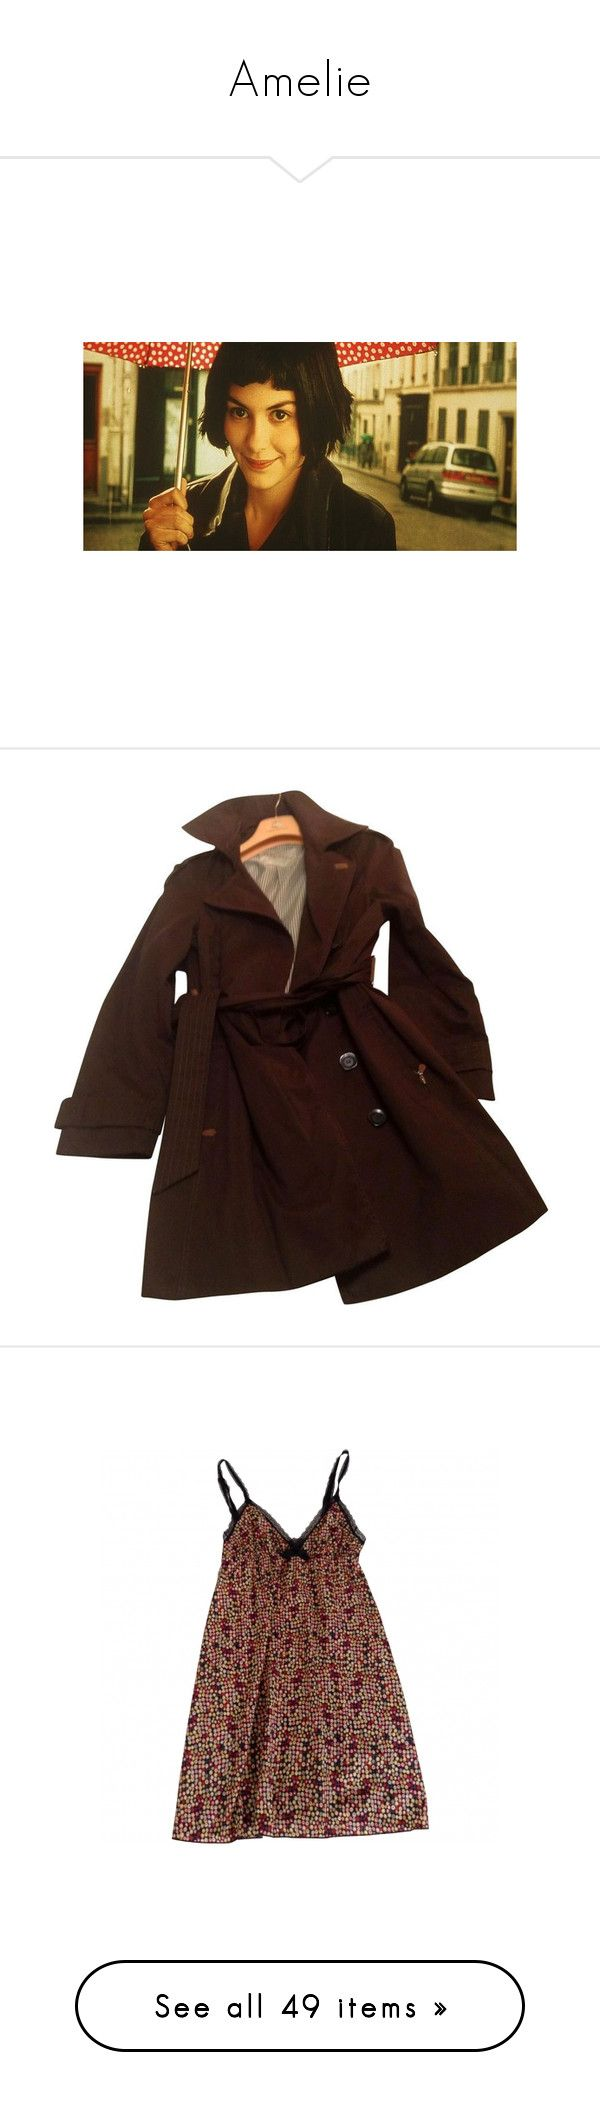 """""""Amelie"""" by the-secret-garden ❤ liked on Polyvore featuring amelie, people, destin, outerwear, coats, dark brown trench coat, brown trench coat, dark brown coat, trench coat and cotton trench coat"""